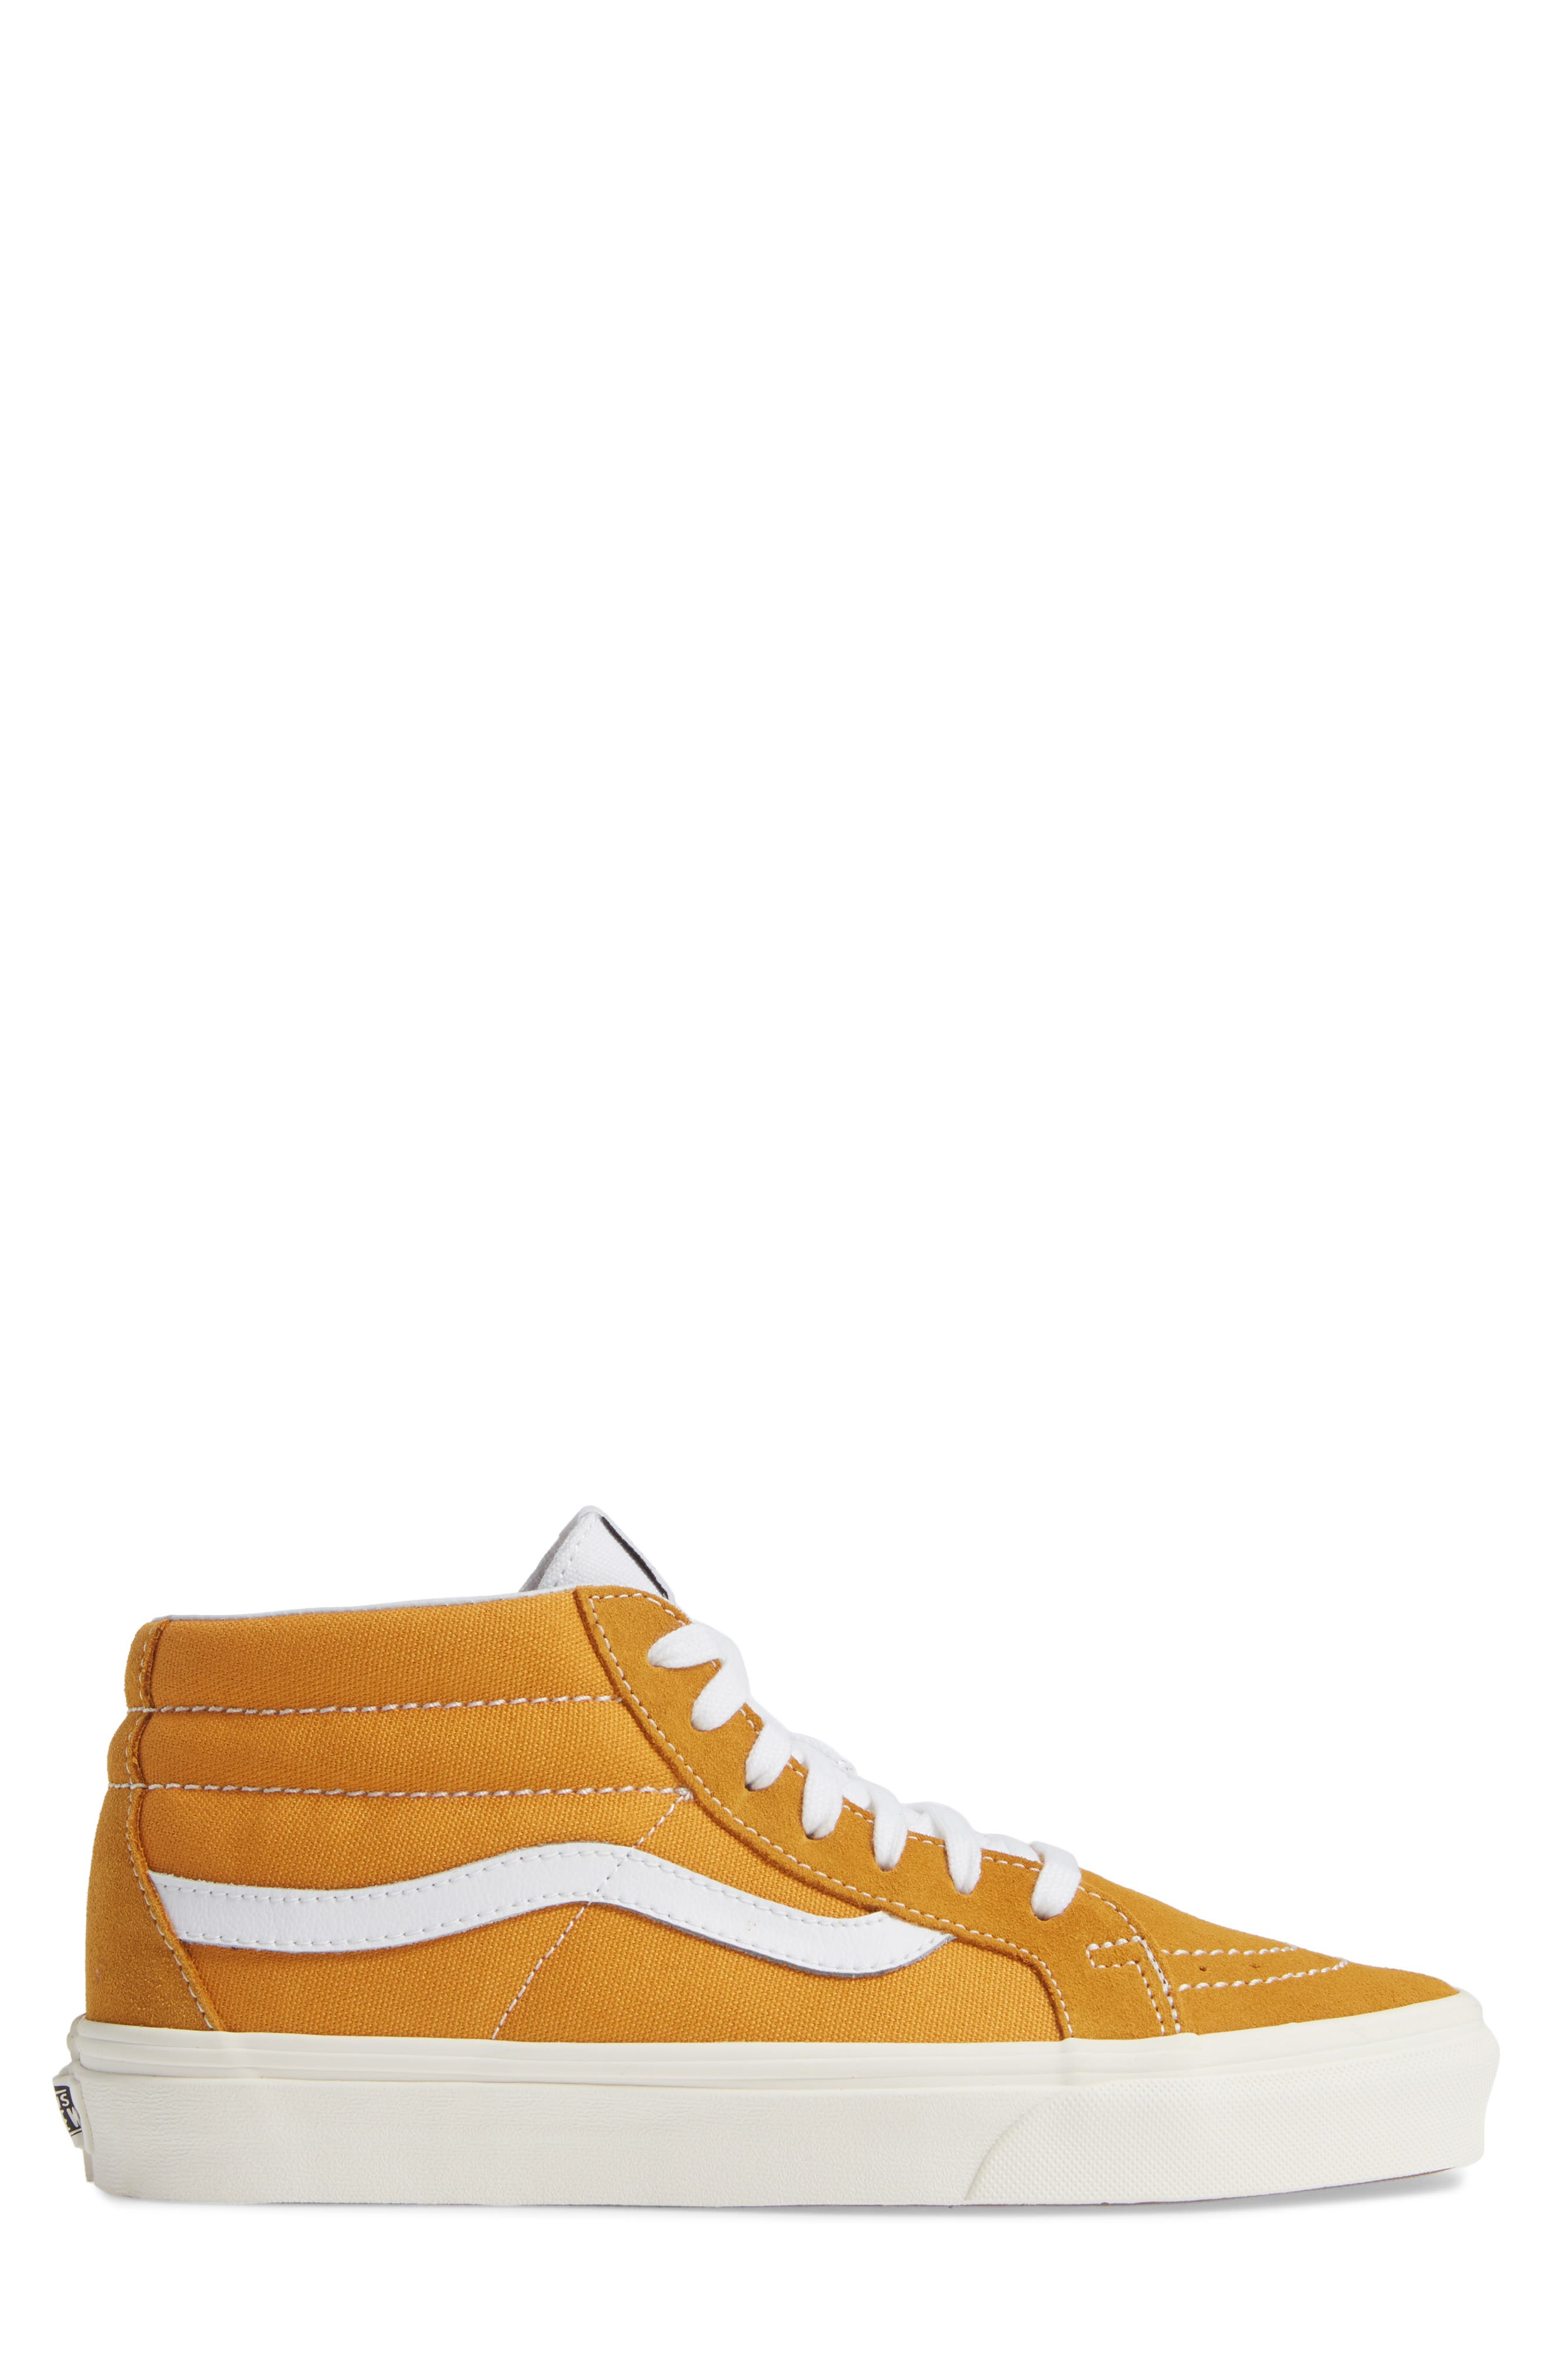 Sk8-Mid Reissue Sneaker,                             Alternate thumbnail 3, color,                             SUNFLOWER CANVAS/SUEDE